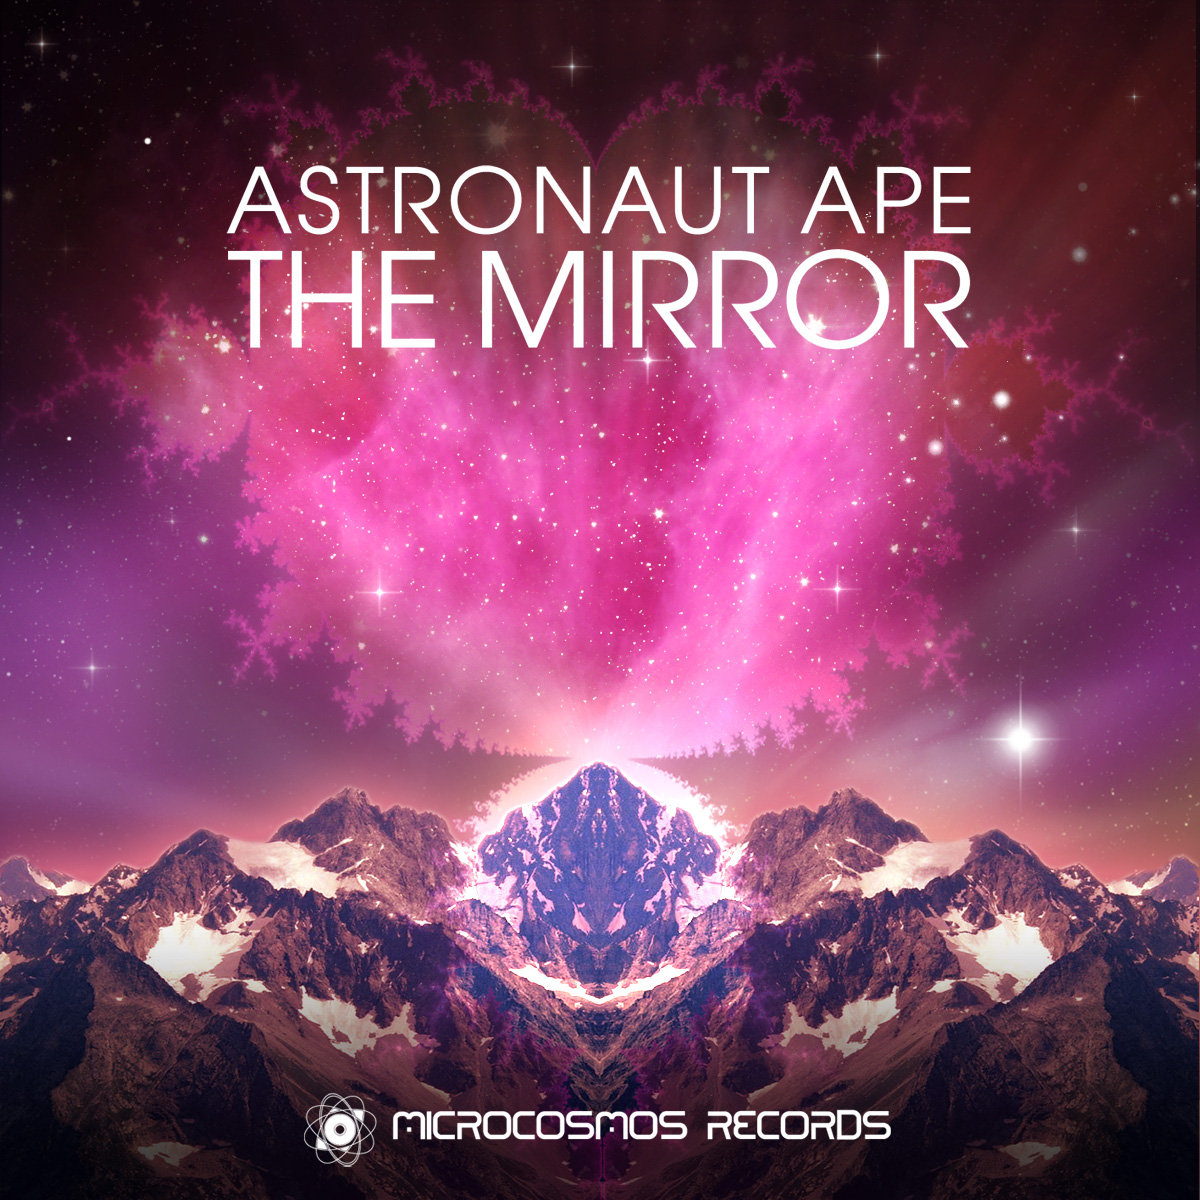 Astronaut Ape - In Suspense @ 'The Mirror' album (ambient, chill-out)